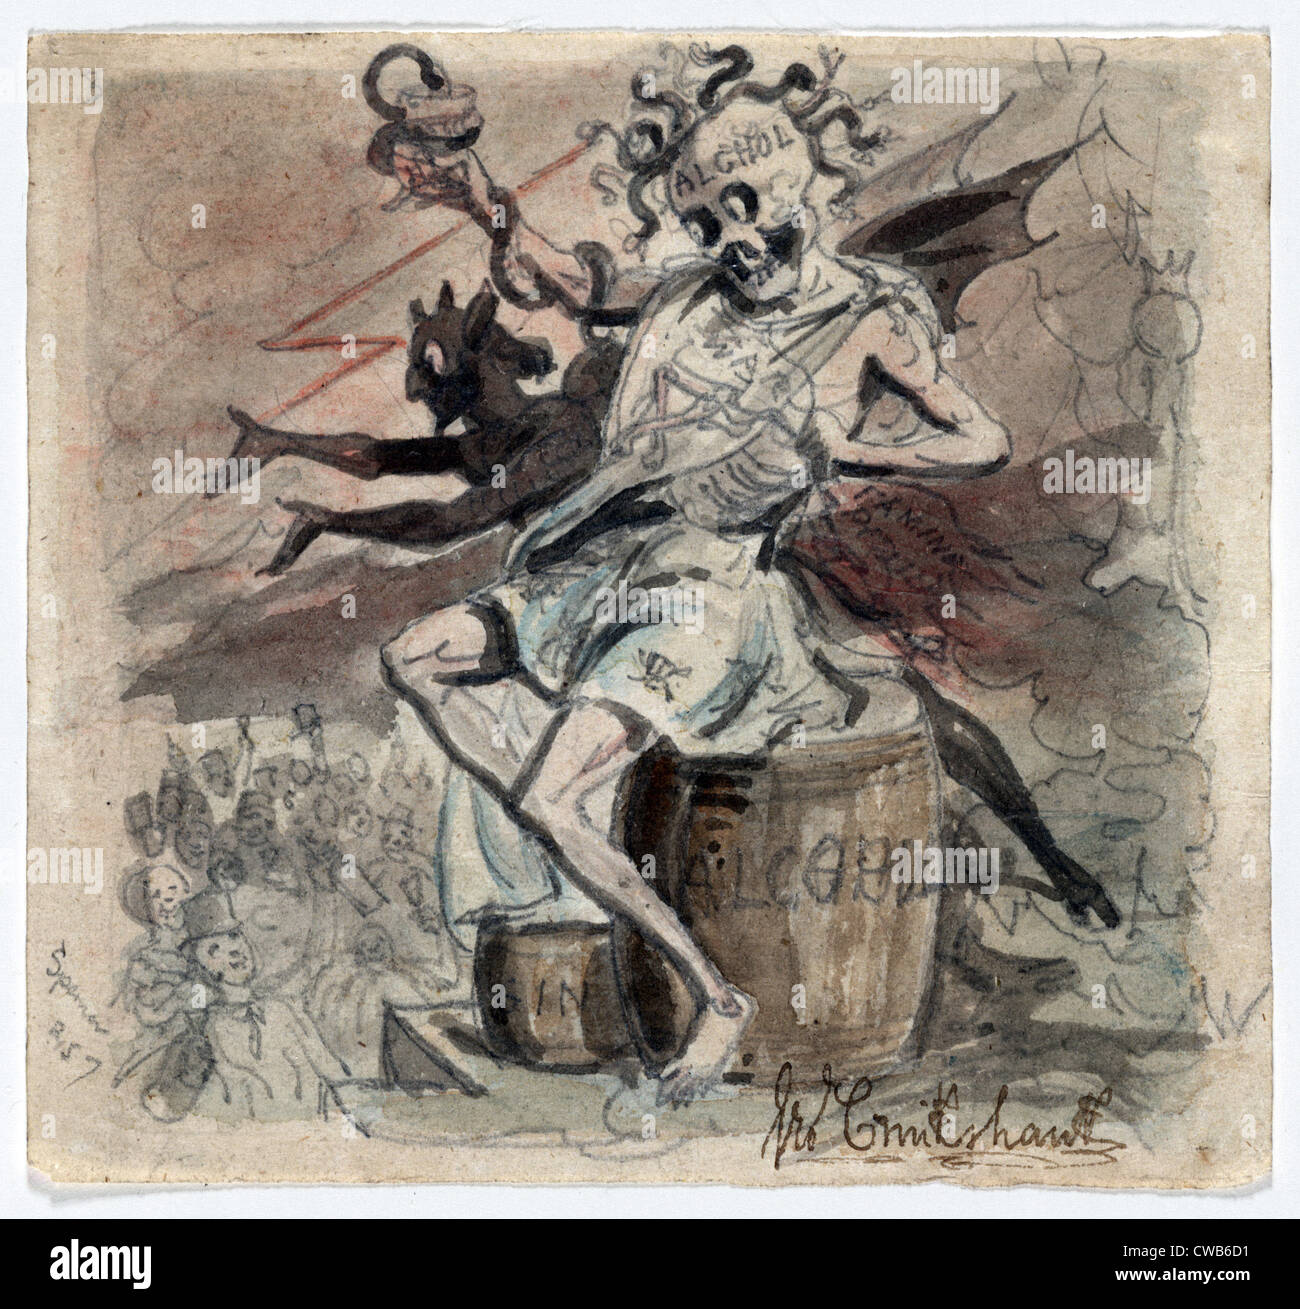 Allegory of the demon Alcohol. Watercolor by George Cruikshank ca. 1830s - Stock Image